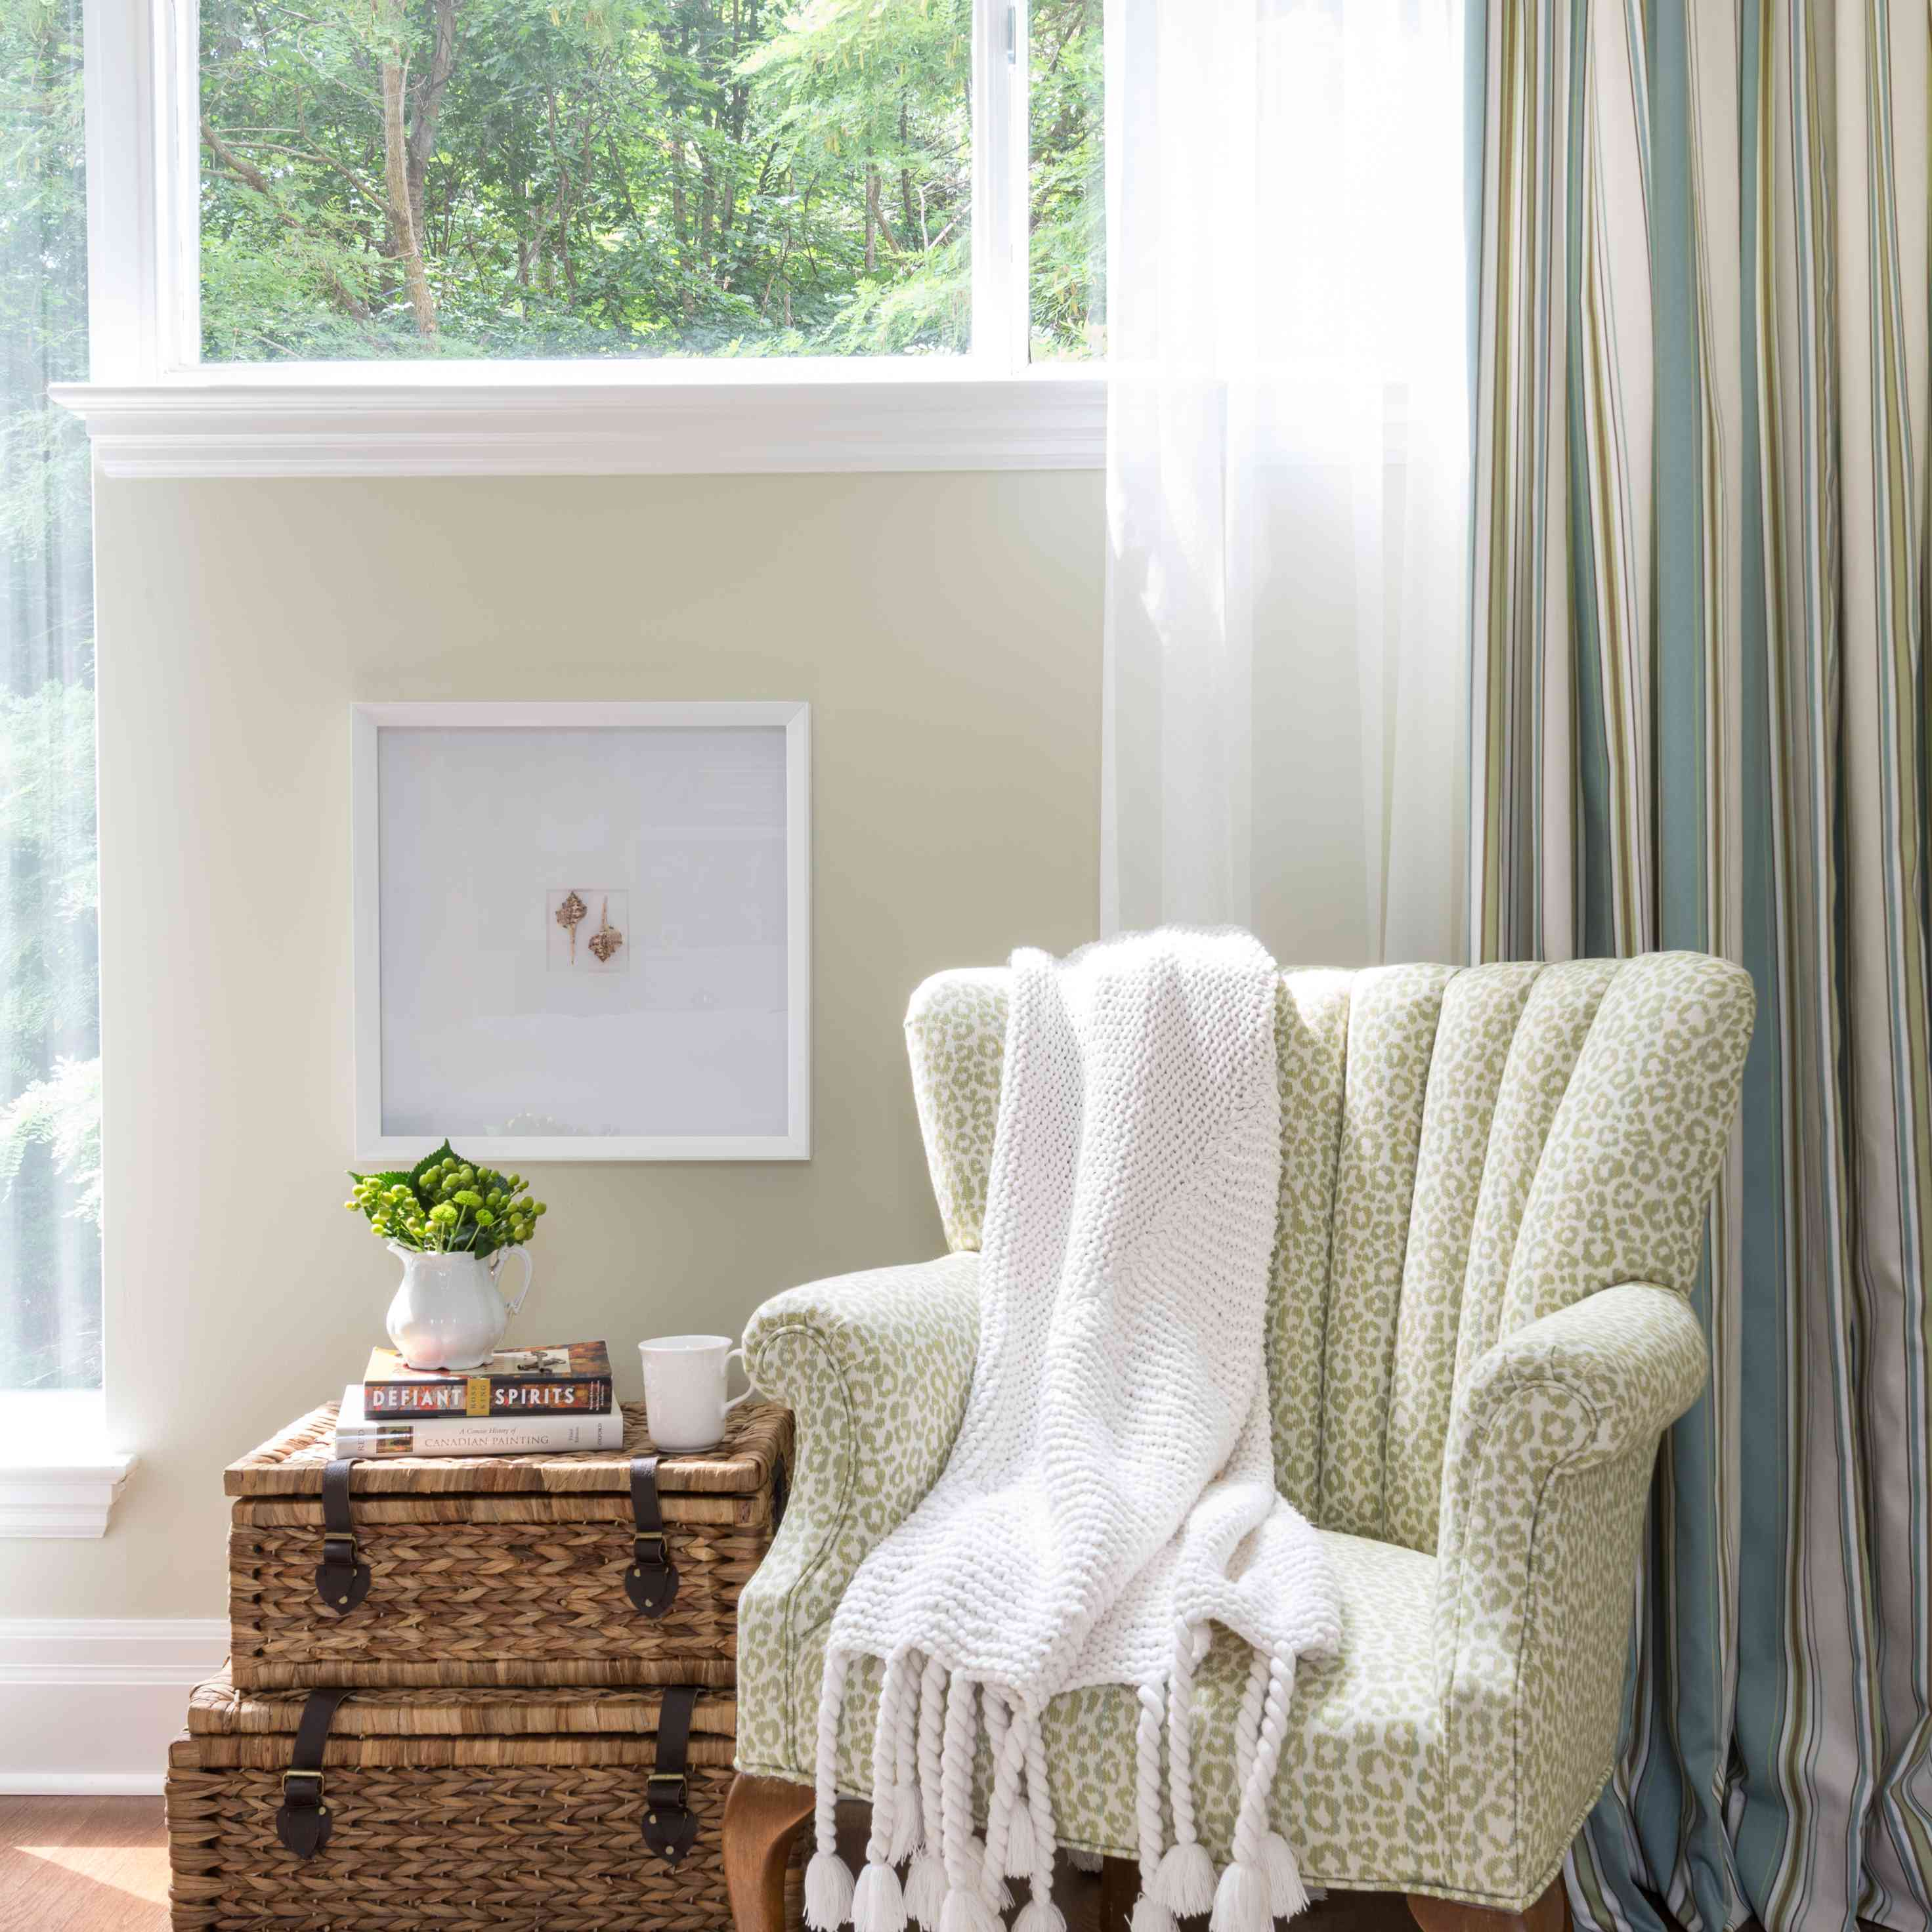 how to decorate sustainably - vintage chair next to wicker suitcases